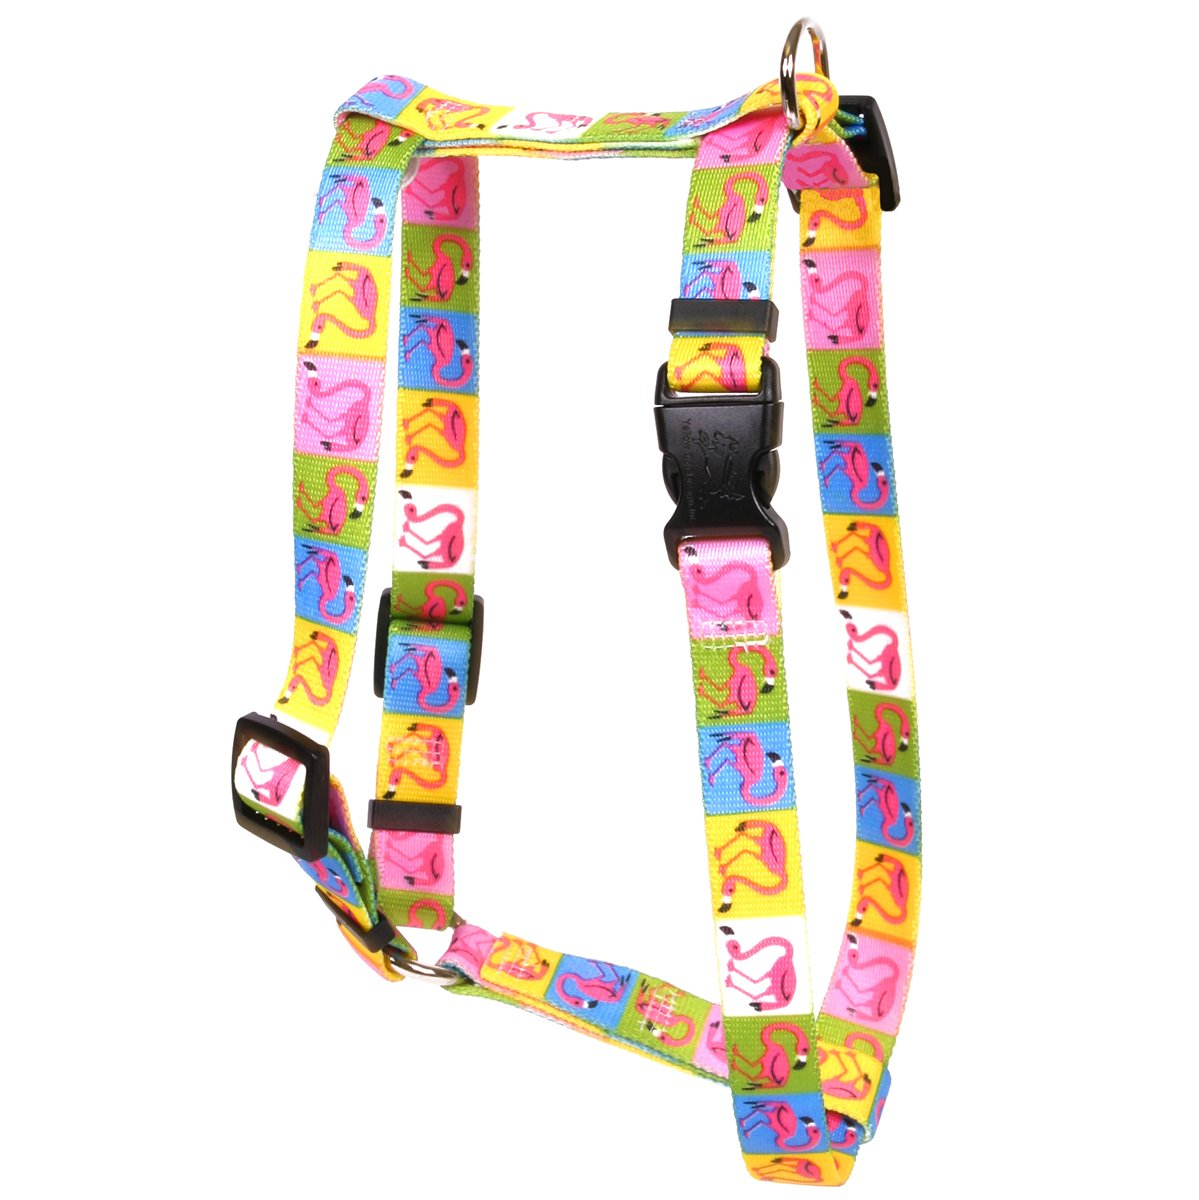 Yellow Dog Design Pink Flamingo Roman Style H Dog Harness, Large-1'' Wide and fits Chest of 20 to 28''